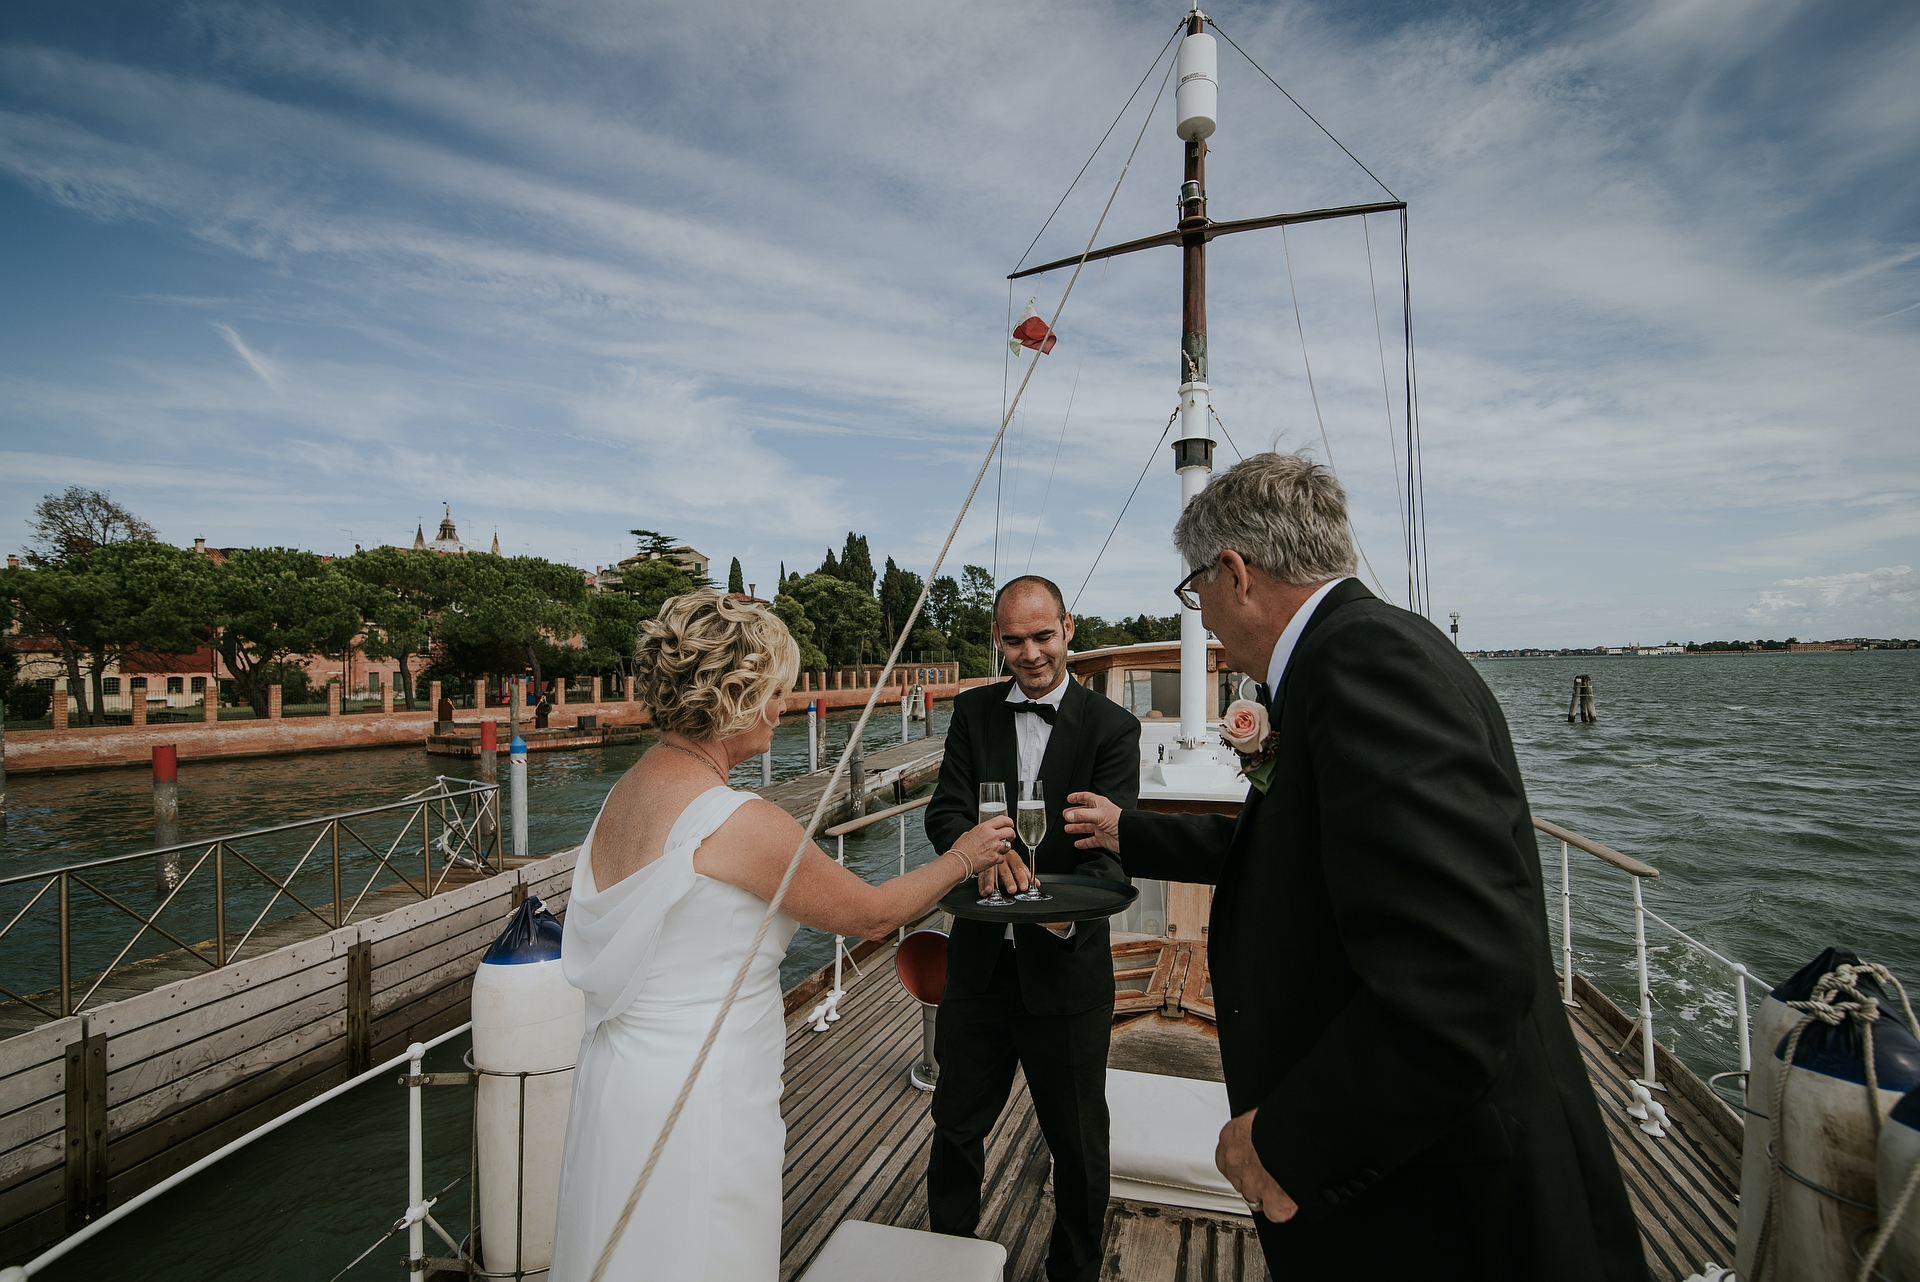 Venice, Italy Yacht Elopement Photography | Their first toast as husband and wife